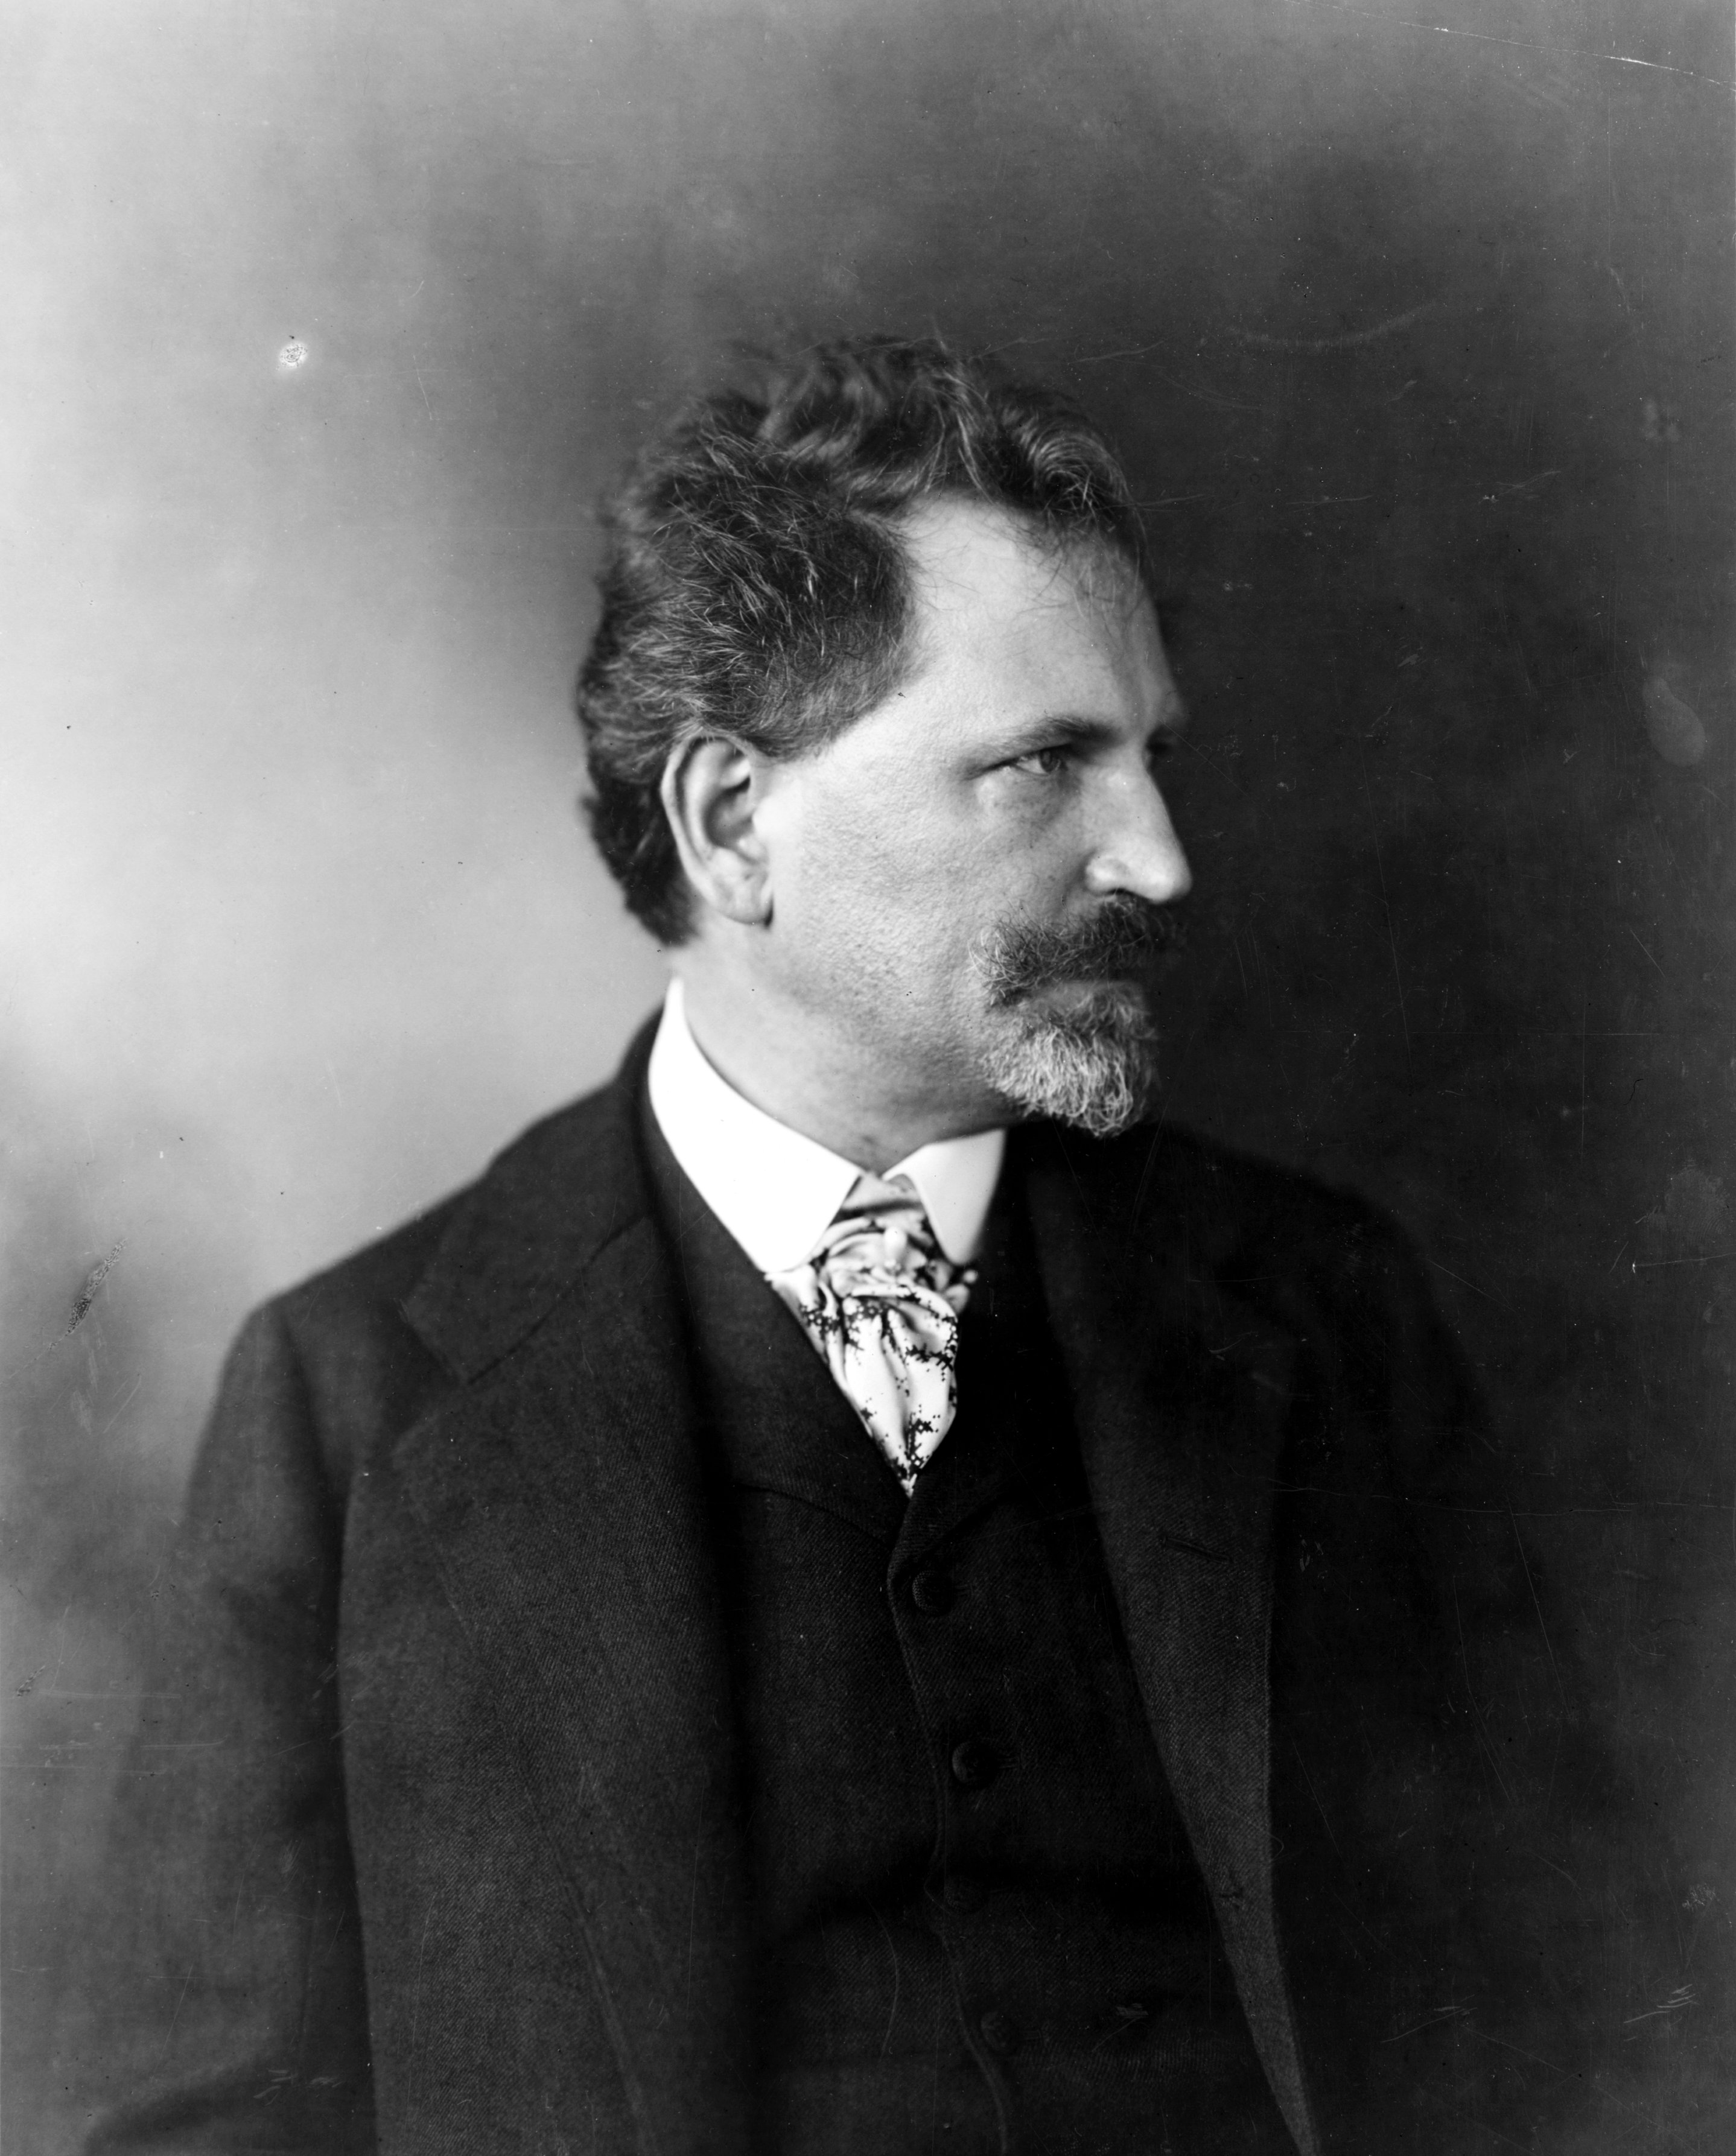 Image of Alphonse Marie Mucha from Wikidata